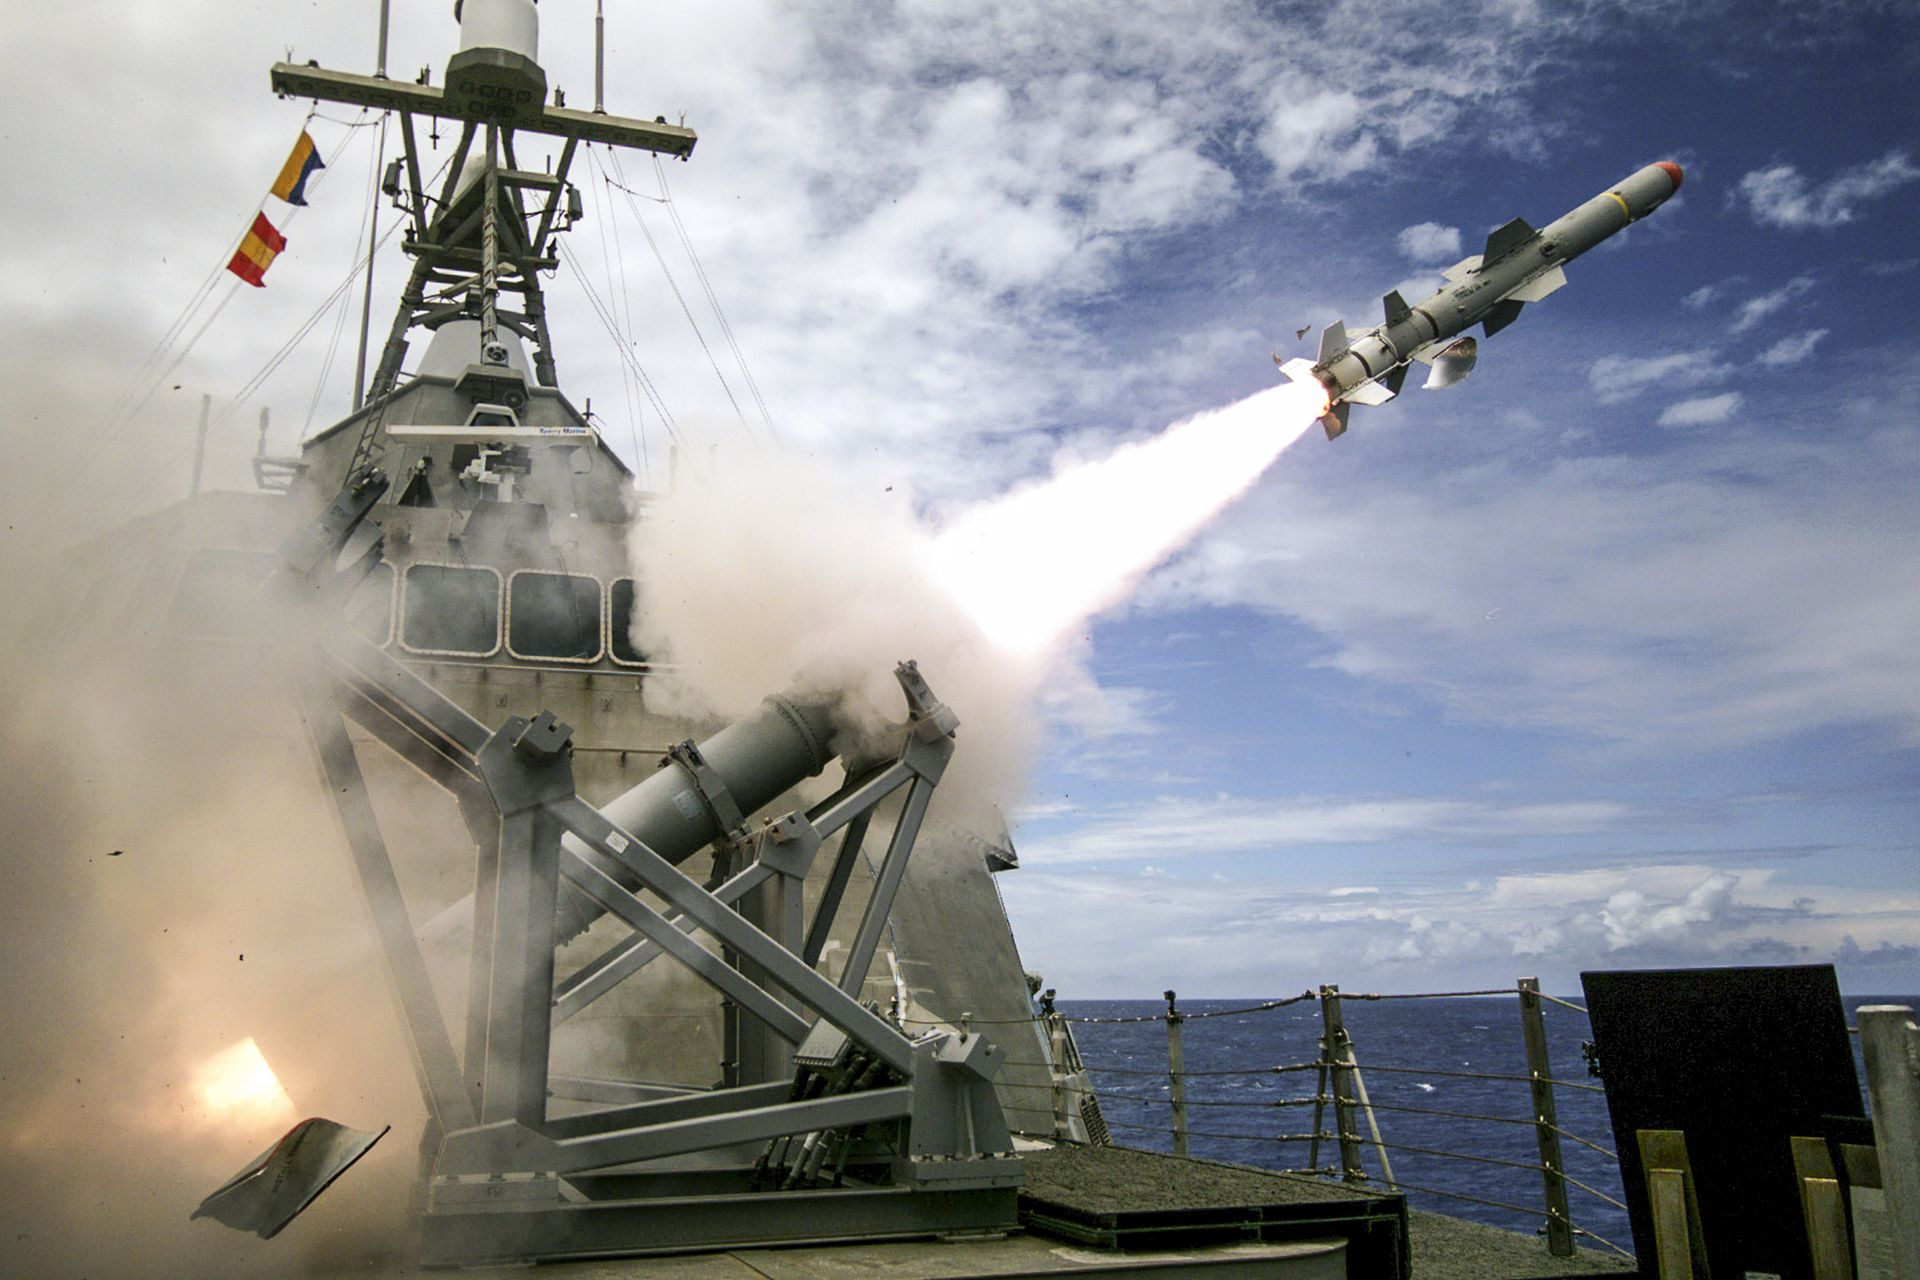 Boeing Harpoon Exits Navy LCS, Frigate Over-the-Horizon ...